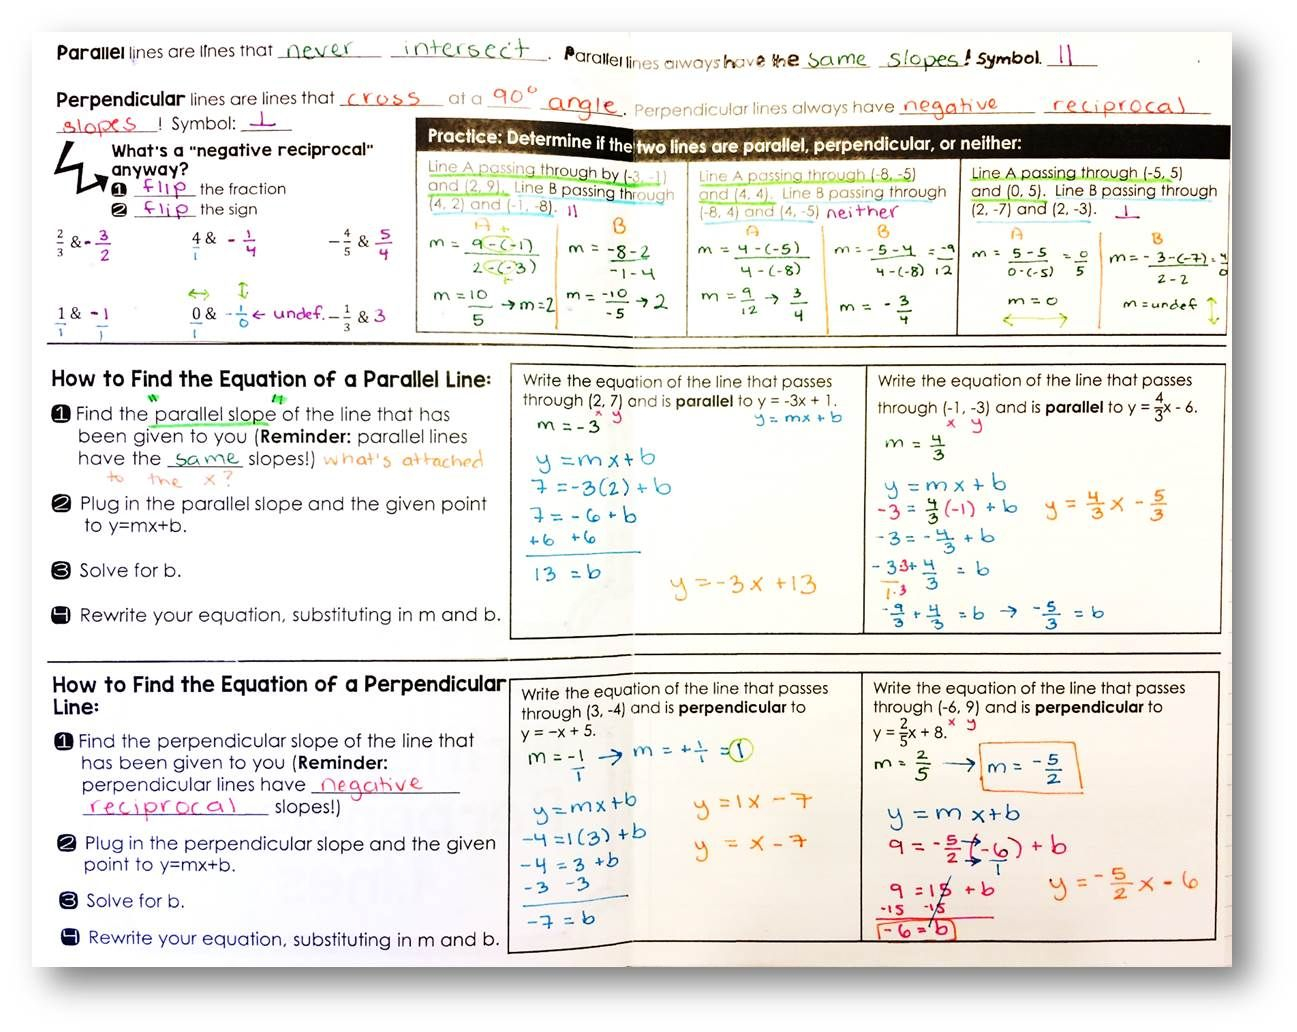 Writing Equations For Parallel And Perpendicular Lines